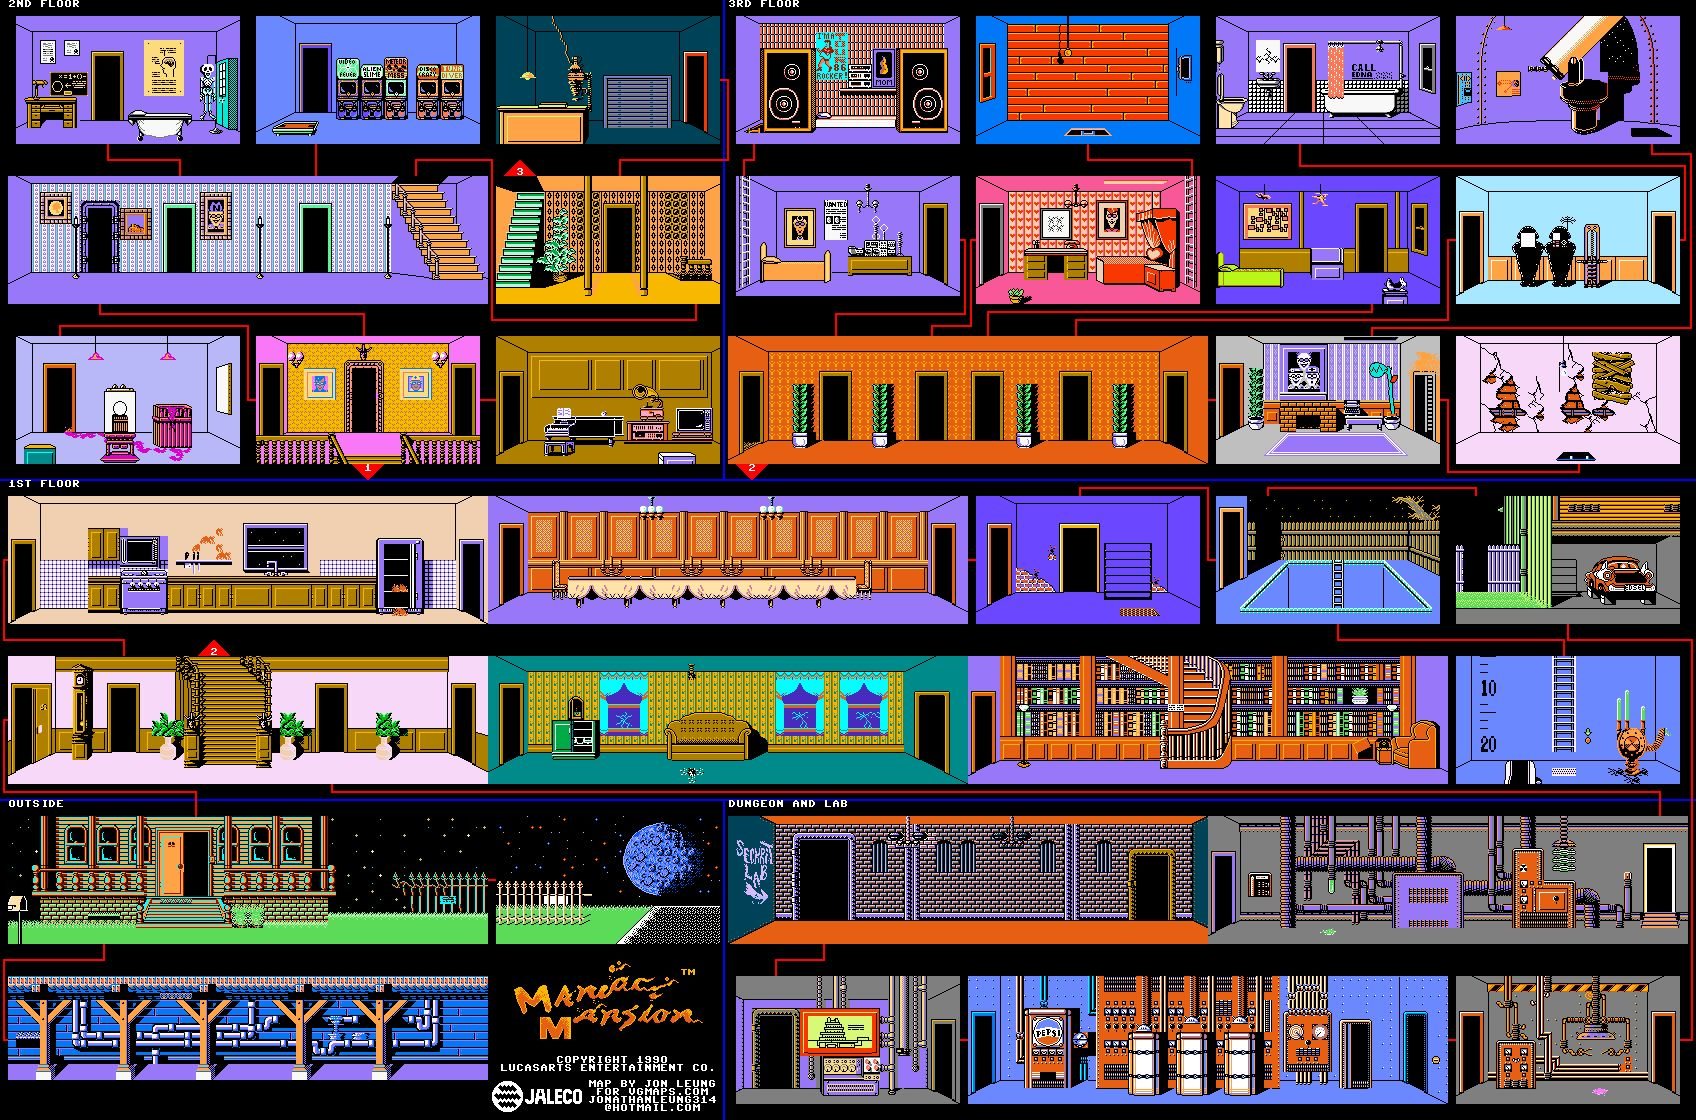 How Many Memories Do You Have Of LucasArts Classic Adventure Game Maniac Mansion Heres A Map The Original NES Version Which Might Spur Even More